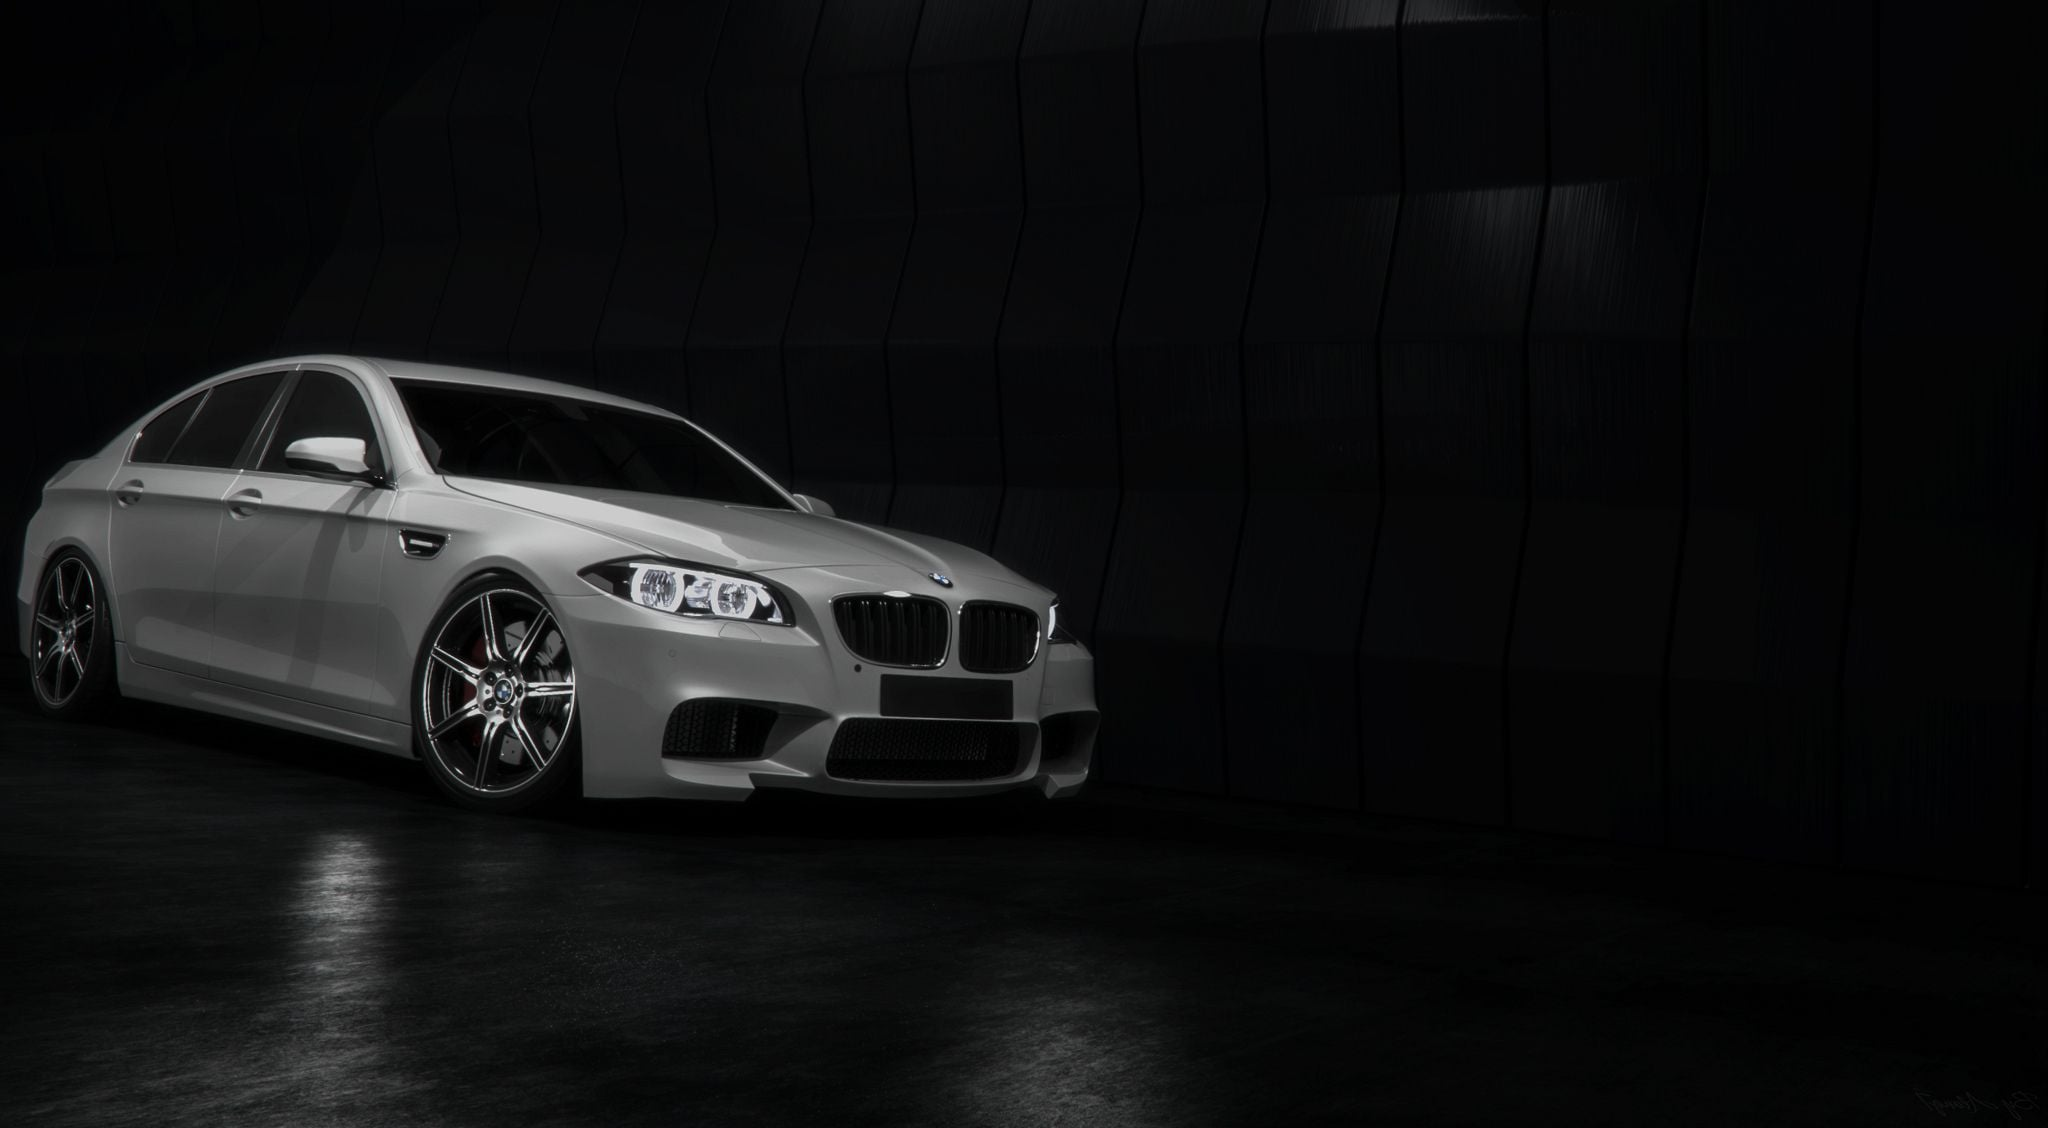 Cars Hd Wallpapers 1080p For Pc Bmw 36 Bmw M5 F10 Wallpapers Hd High Quality Download